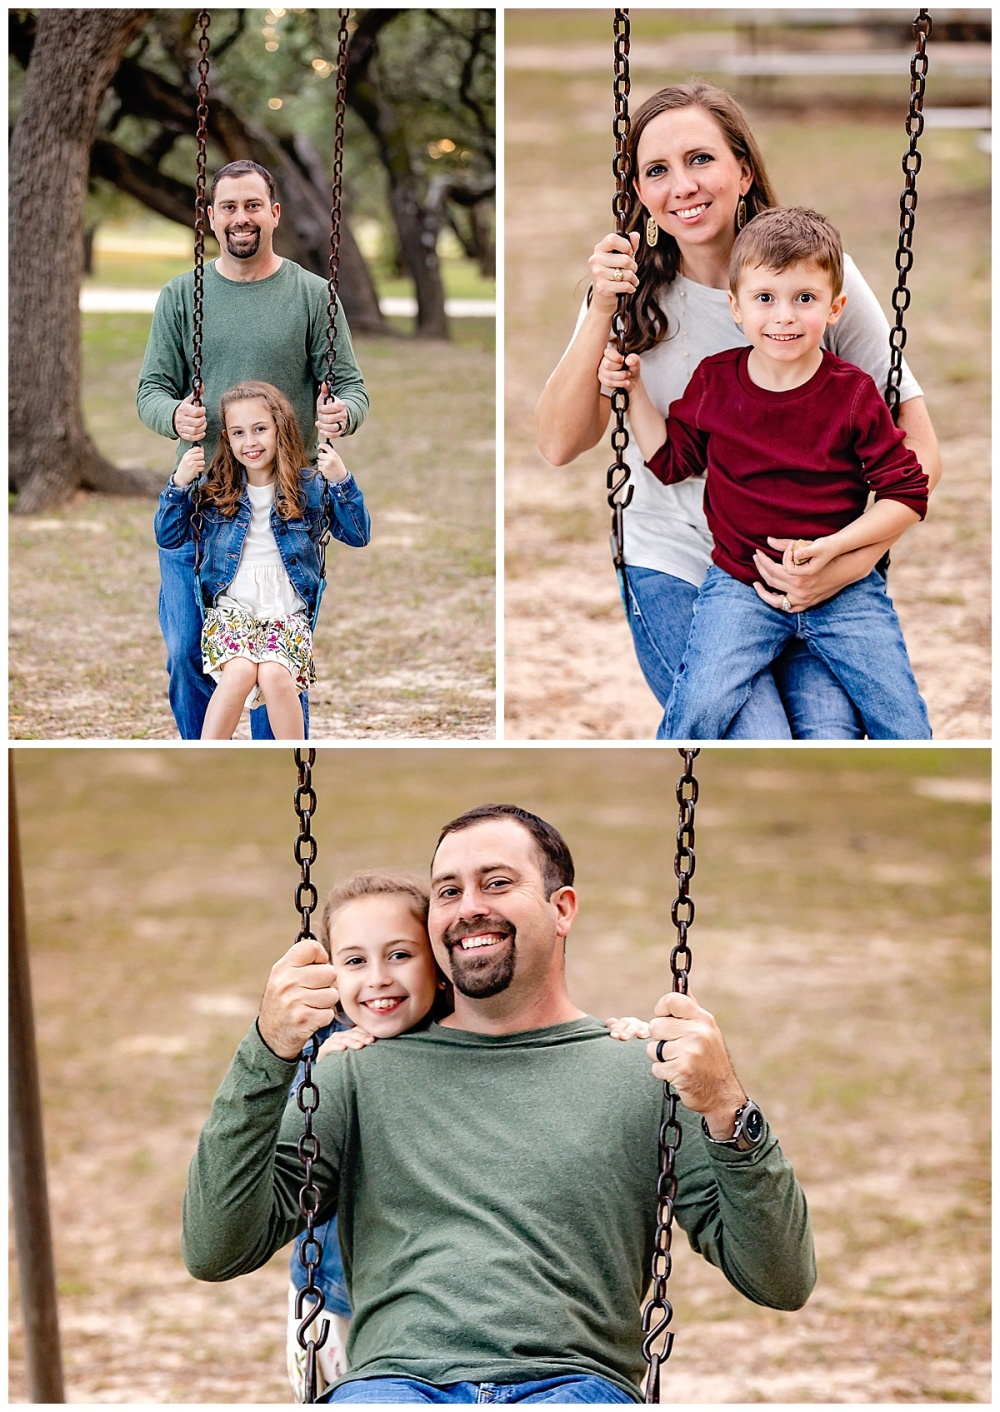 Family-Photographer-LaVernia-Texas-Carly-Barton-Photography-Latham_0010.jpg